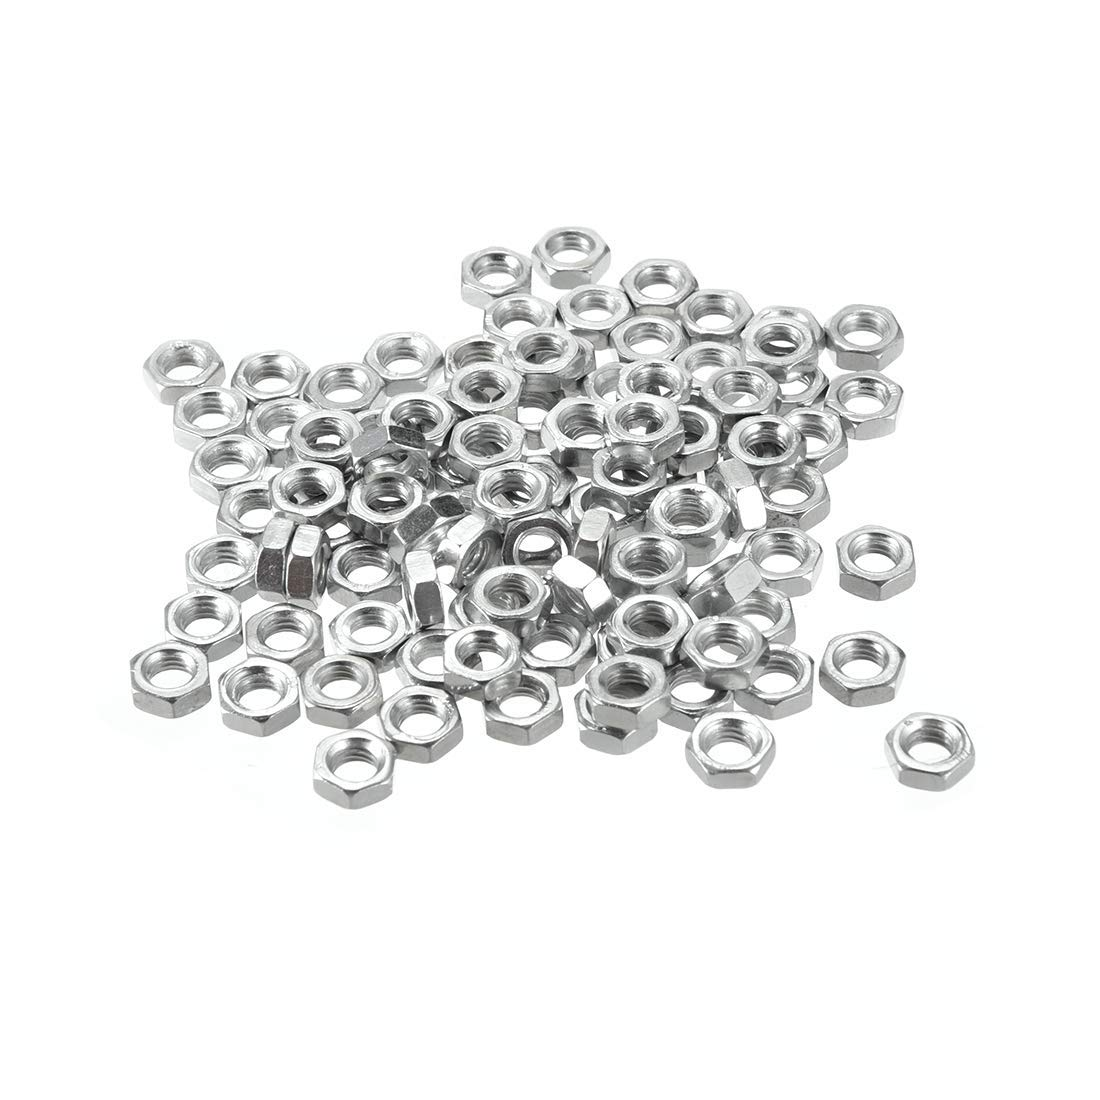 M5x0.8mm Metric Thick Hex Nut Hexagon Nuts 100 Silver Tone Package Carbon Steel